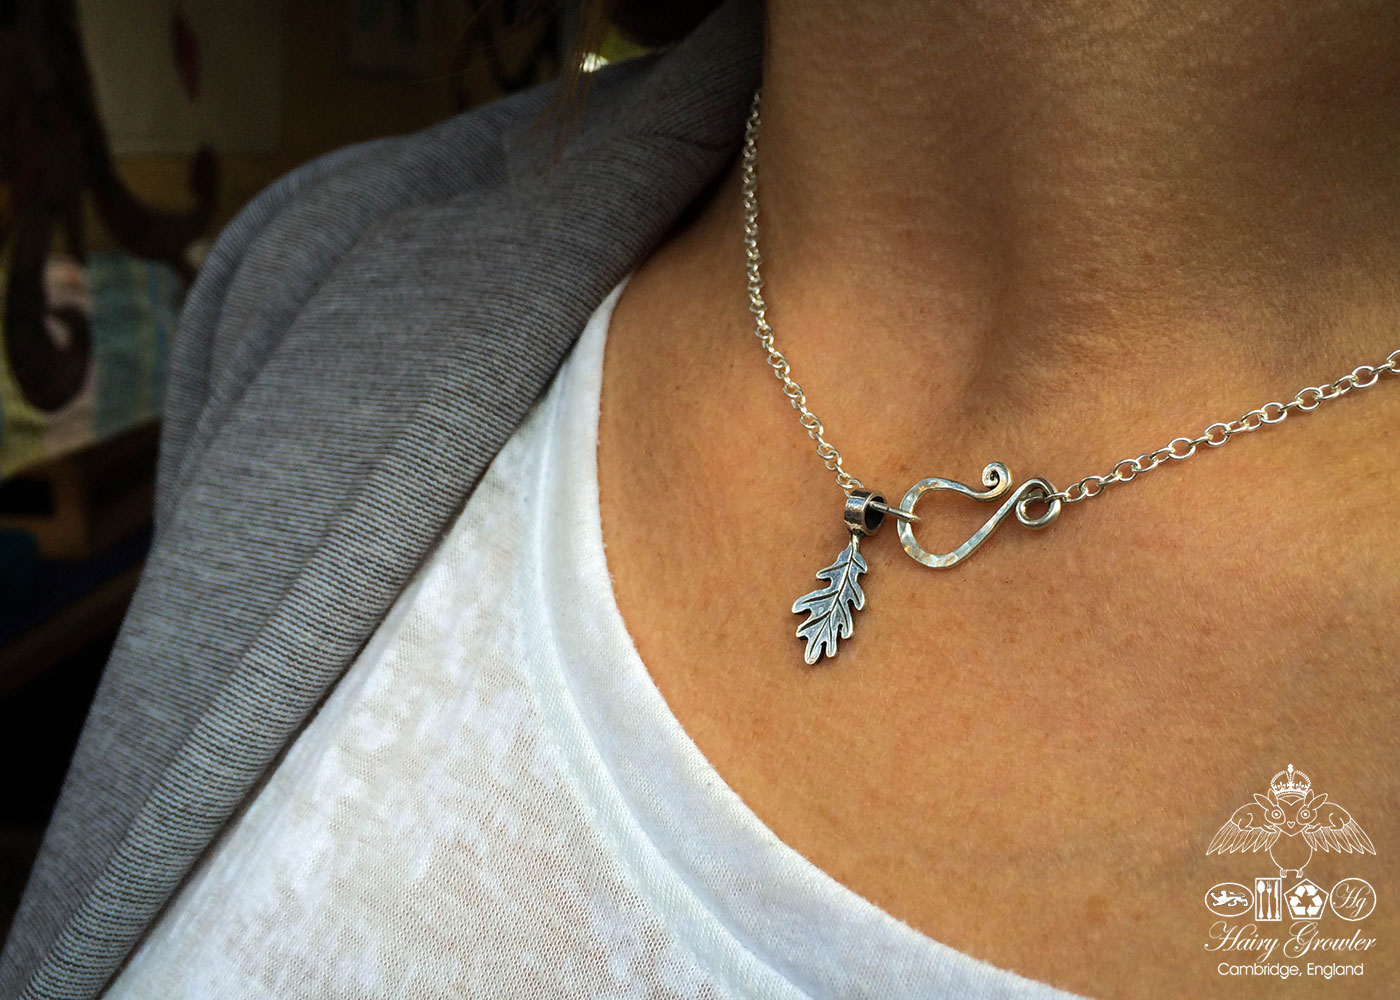 handmade and recycled silver coin oak leaf charm for a tree sculpture, necklace or bracelet